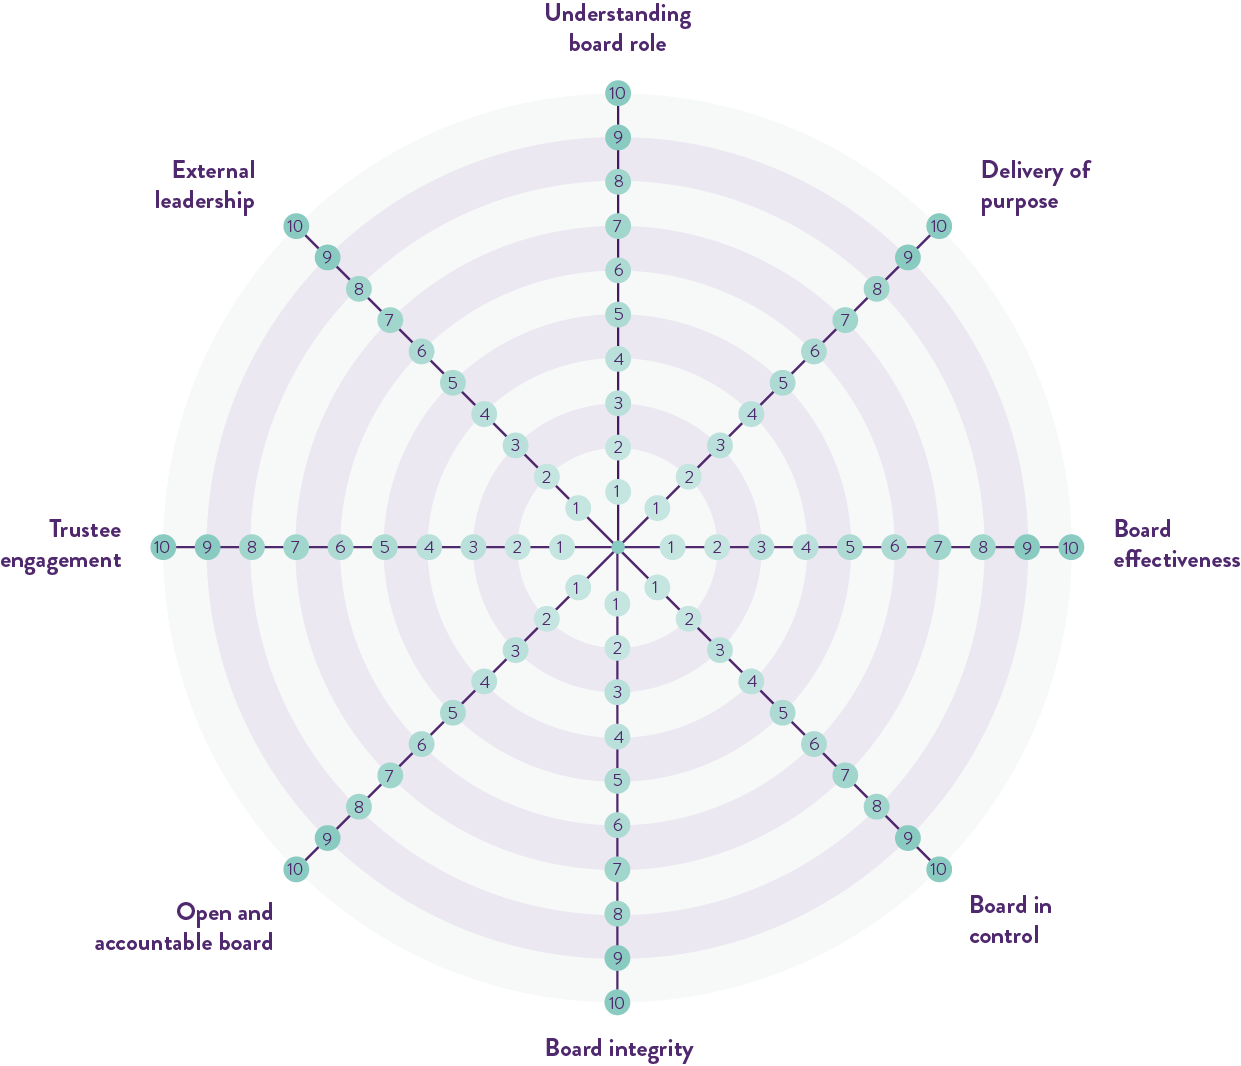 The Governance Wheel scores on understanding board role, delivery of purpose, board effectiveness, board in control, board integrity, open and accountable board, trustee engagement and external leadership.